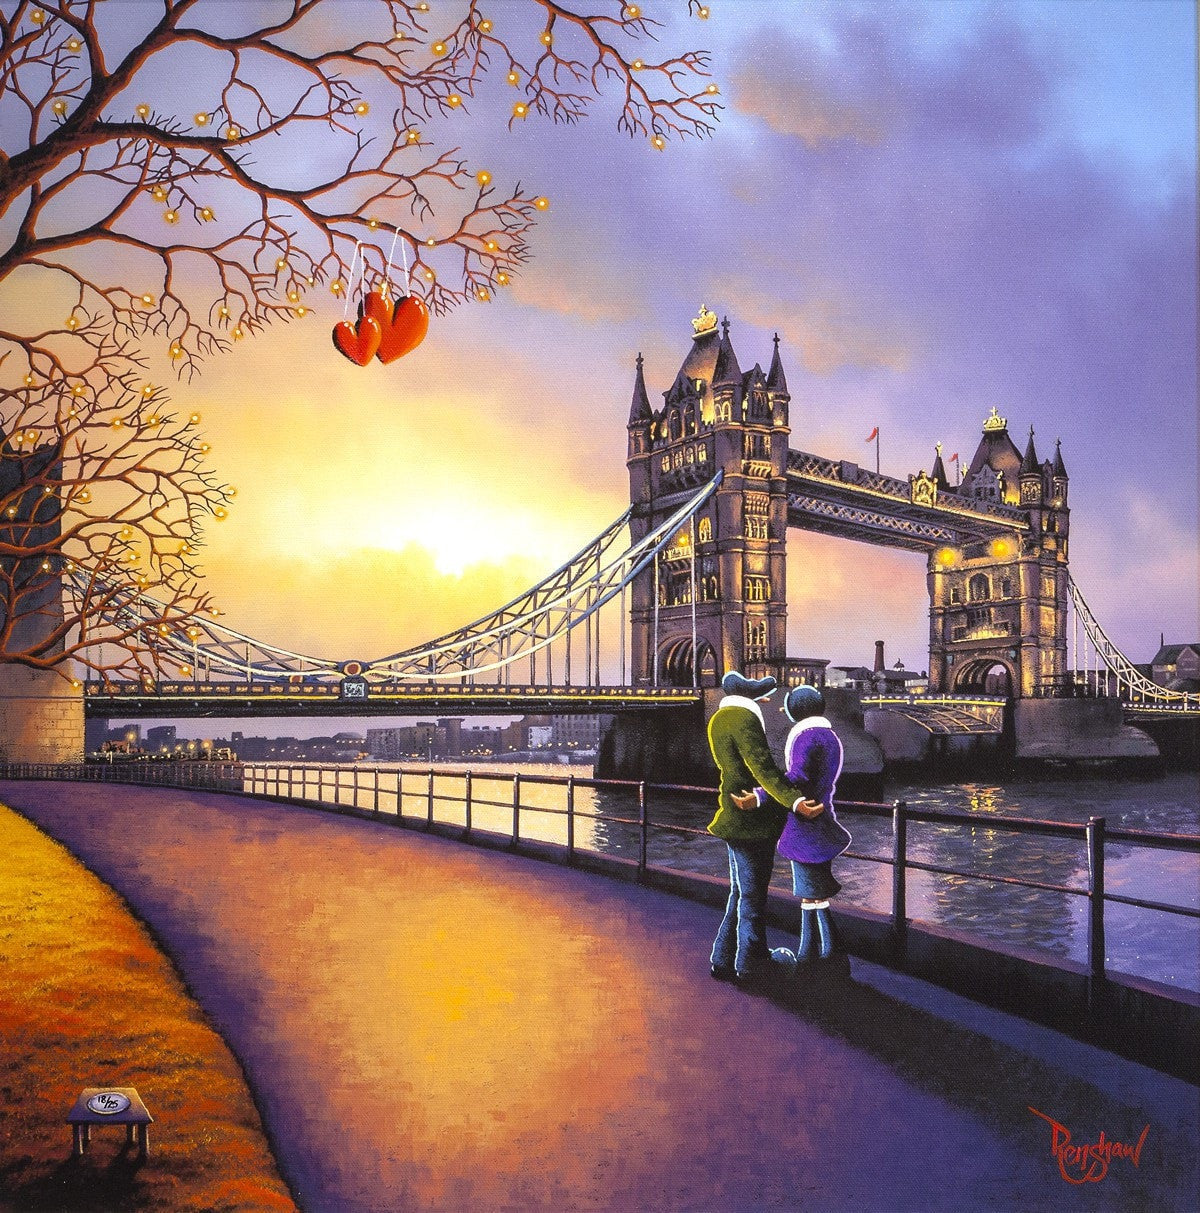 Heart of London - Edition David Renshaw